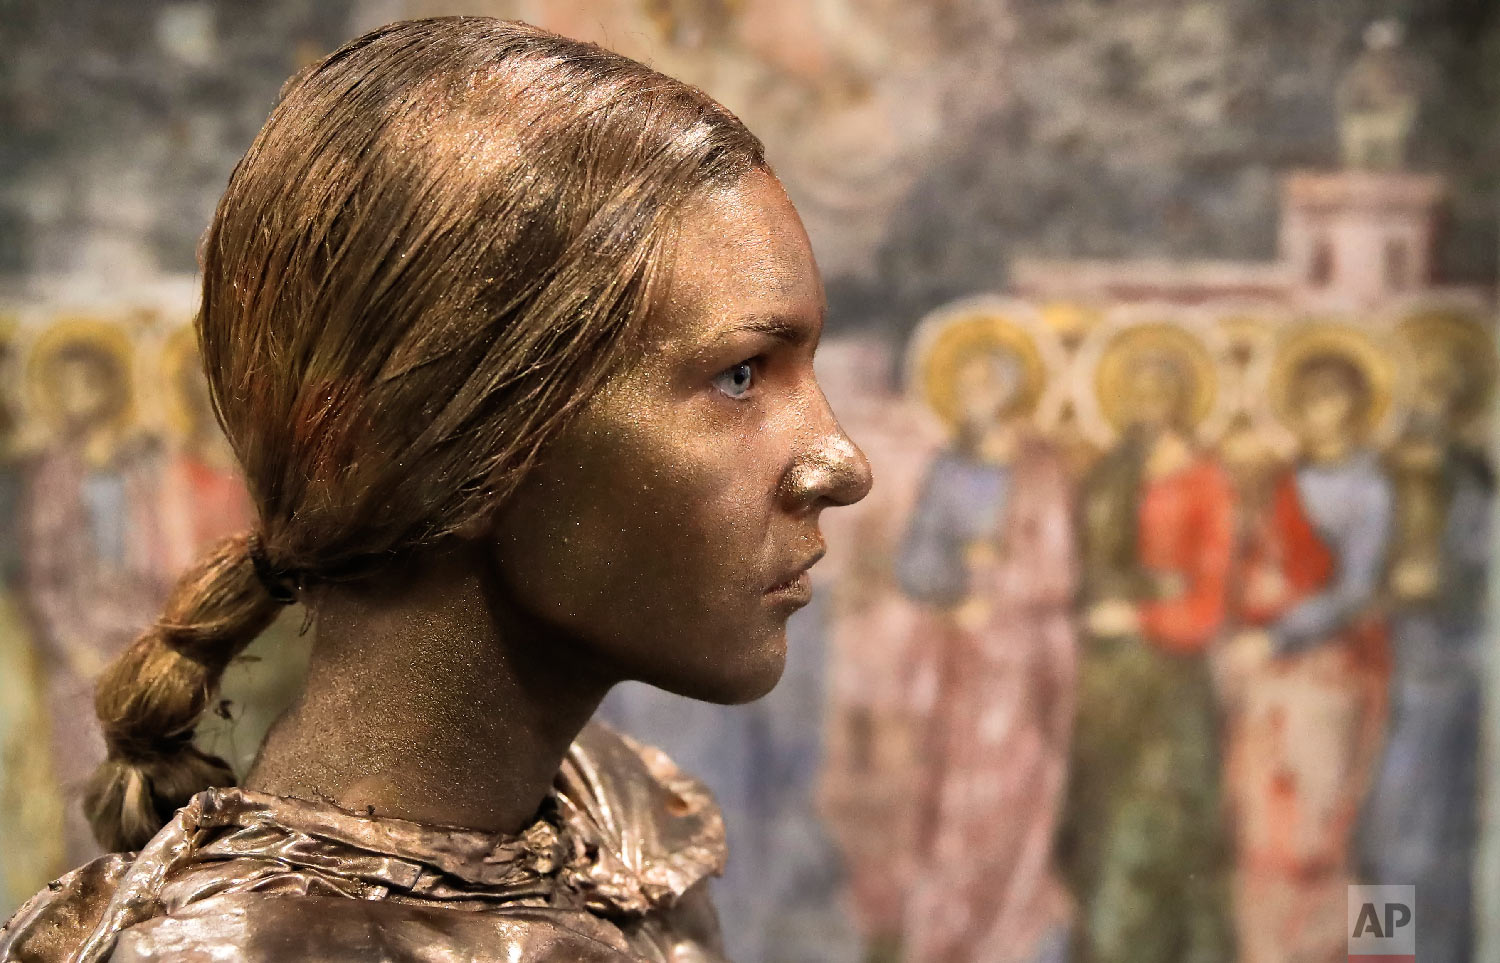 An artist of Ukraine's Artel Myth theatre is backdropped by a religious painting before performing her Yaroslavna character during the Living Statues International Festival, in Bucharest, Romania on Tuesday, May 22, 2018. (AP Photo/Vadim Ghirda)